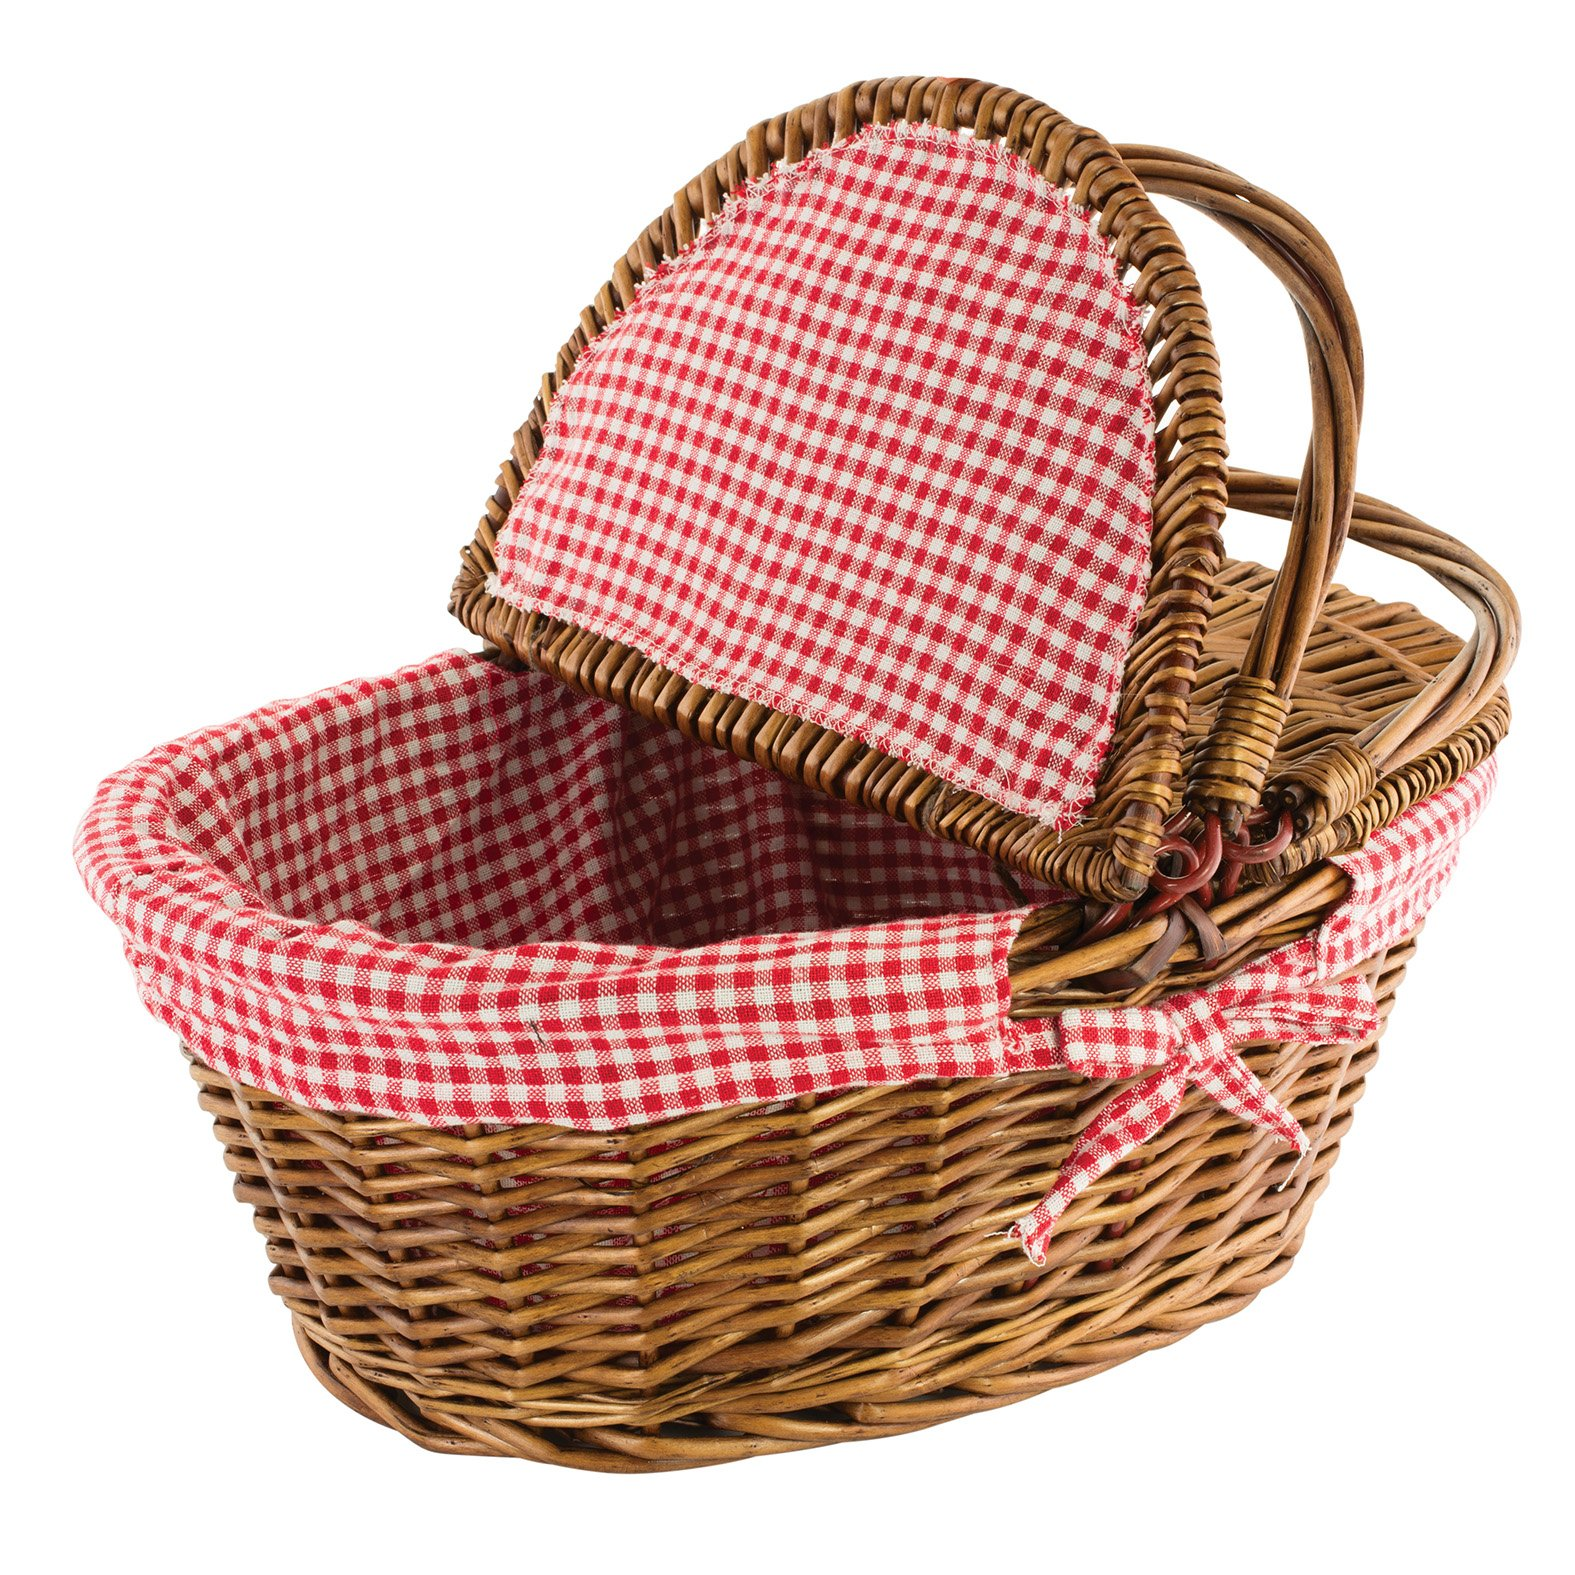 Kovot Country Style Wicker Picnic Basket with Folding Handles & Liners | Measures 16.5'' x 13.5'' x 7.5'' | for Picnics, Parties and BBQs